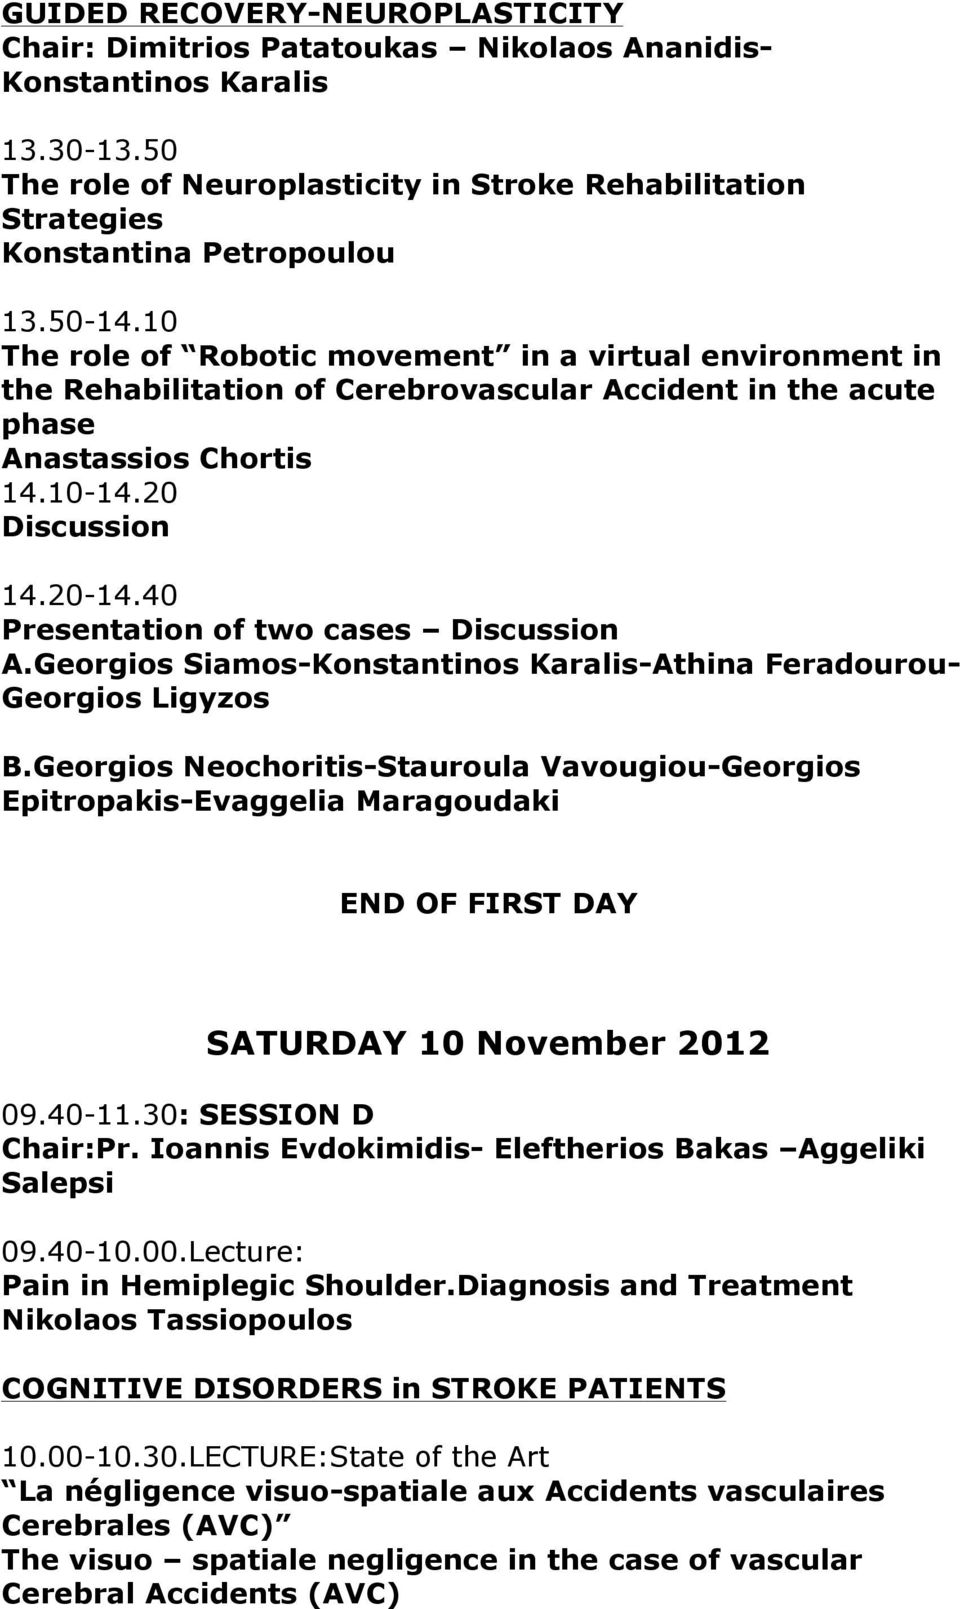 10 The role of Robotic movement in a virtual environment in the Rehabilitation of Cerebrovascular Accident in the acute phase Anastassios Chortis 14.10-14.20 14.20-14.40 Presentation of two cases A.